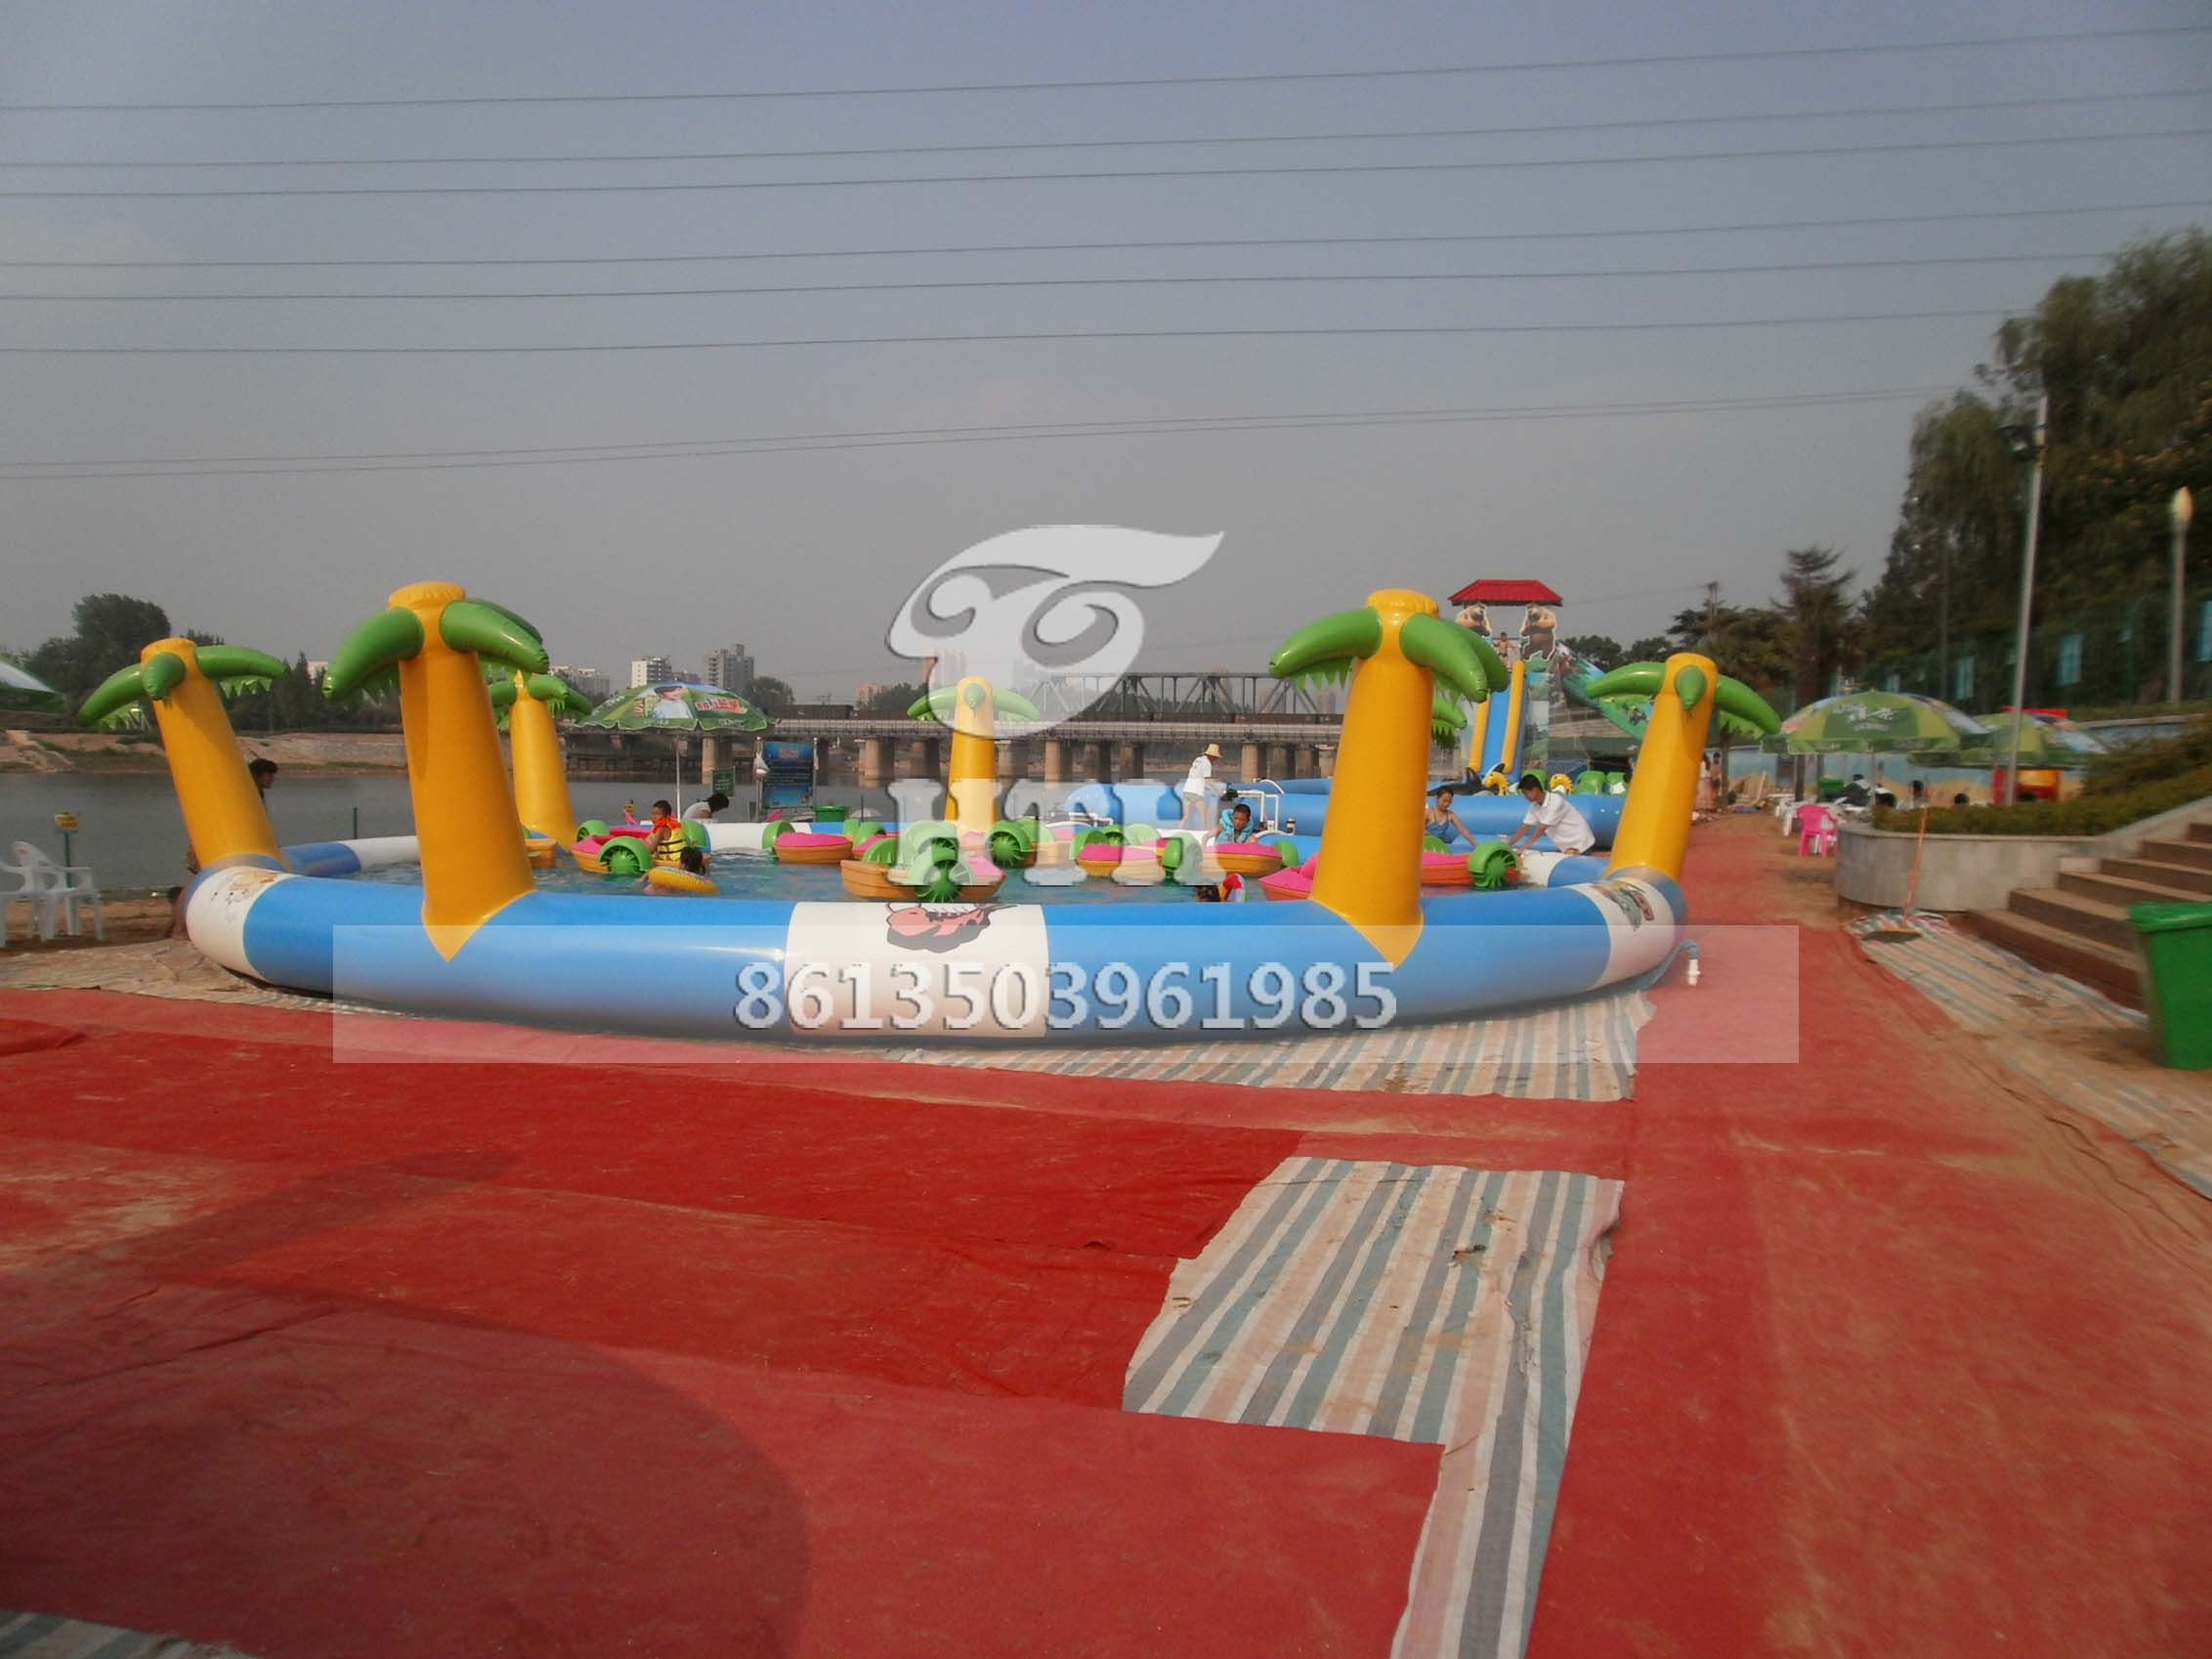 Inflatable Swimming Pool Inflatable Slide Inflatable Bouncer Inflatable Bouncy Castle Google